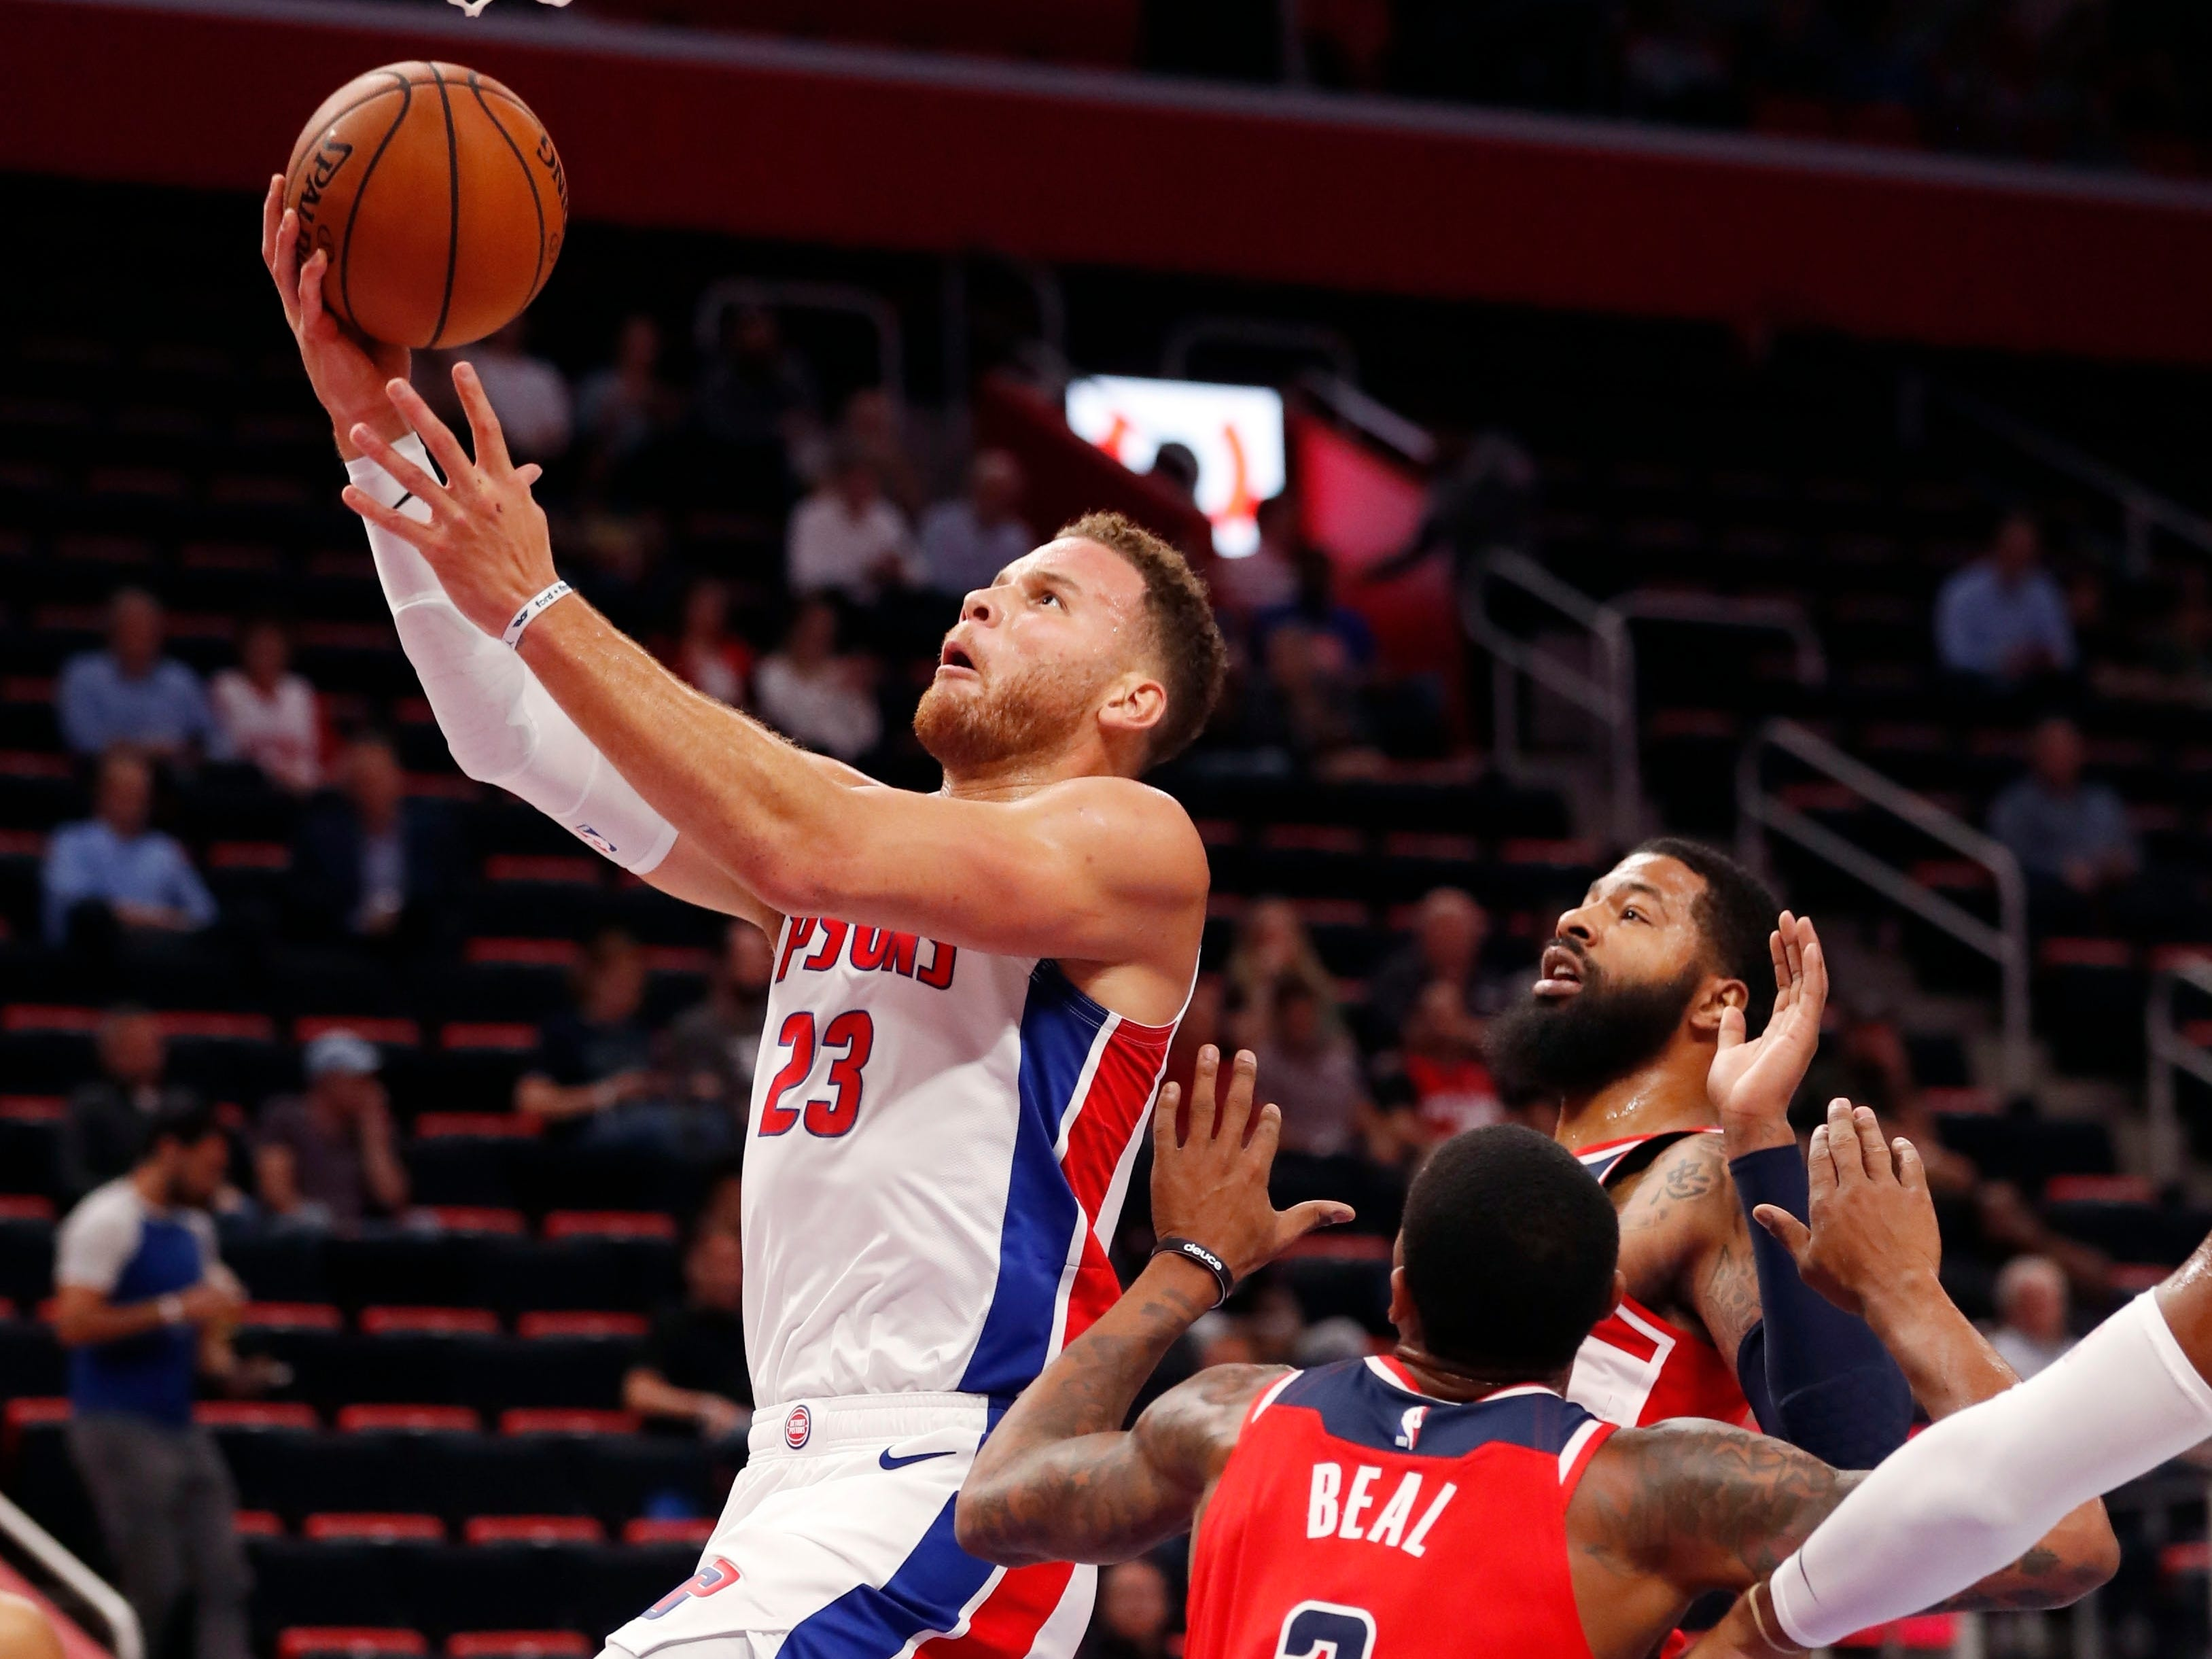 Detroit Pistons forward Blake Griffin (23) makes a layup during the first half.